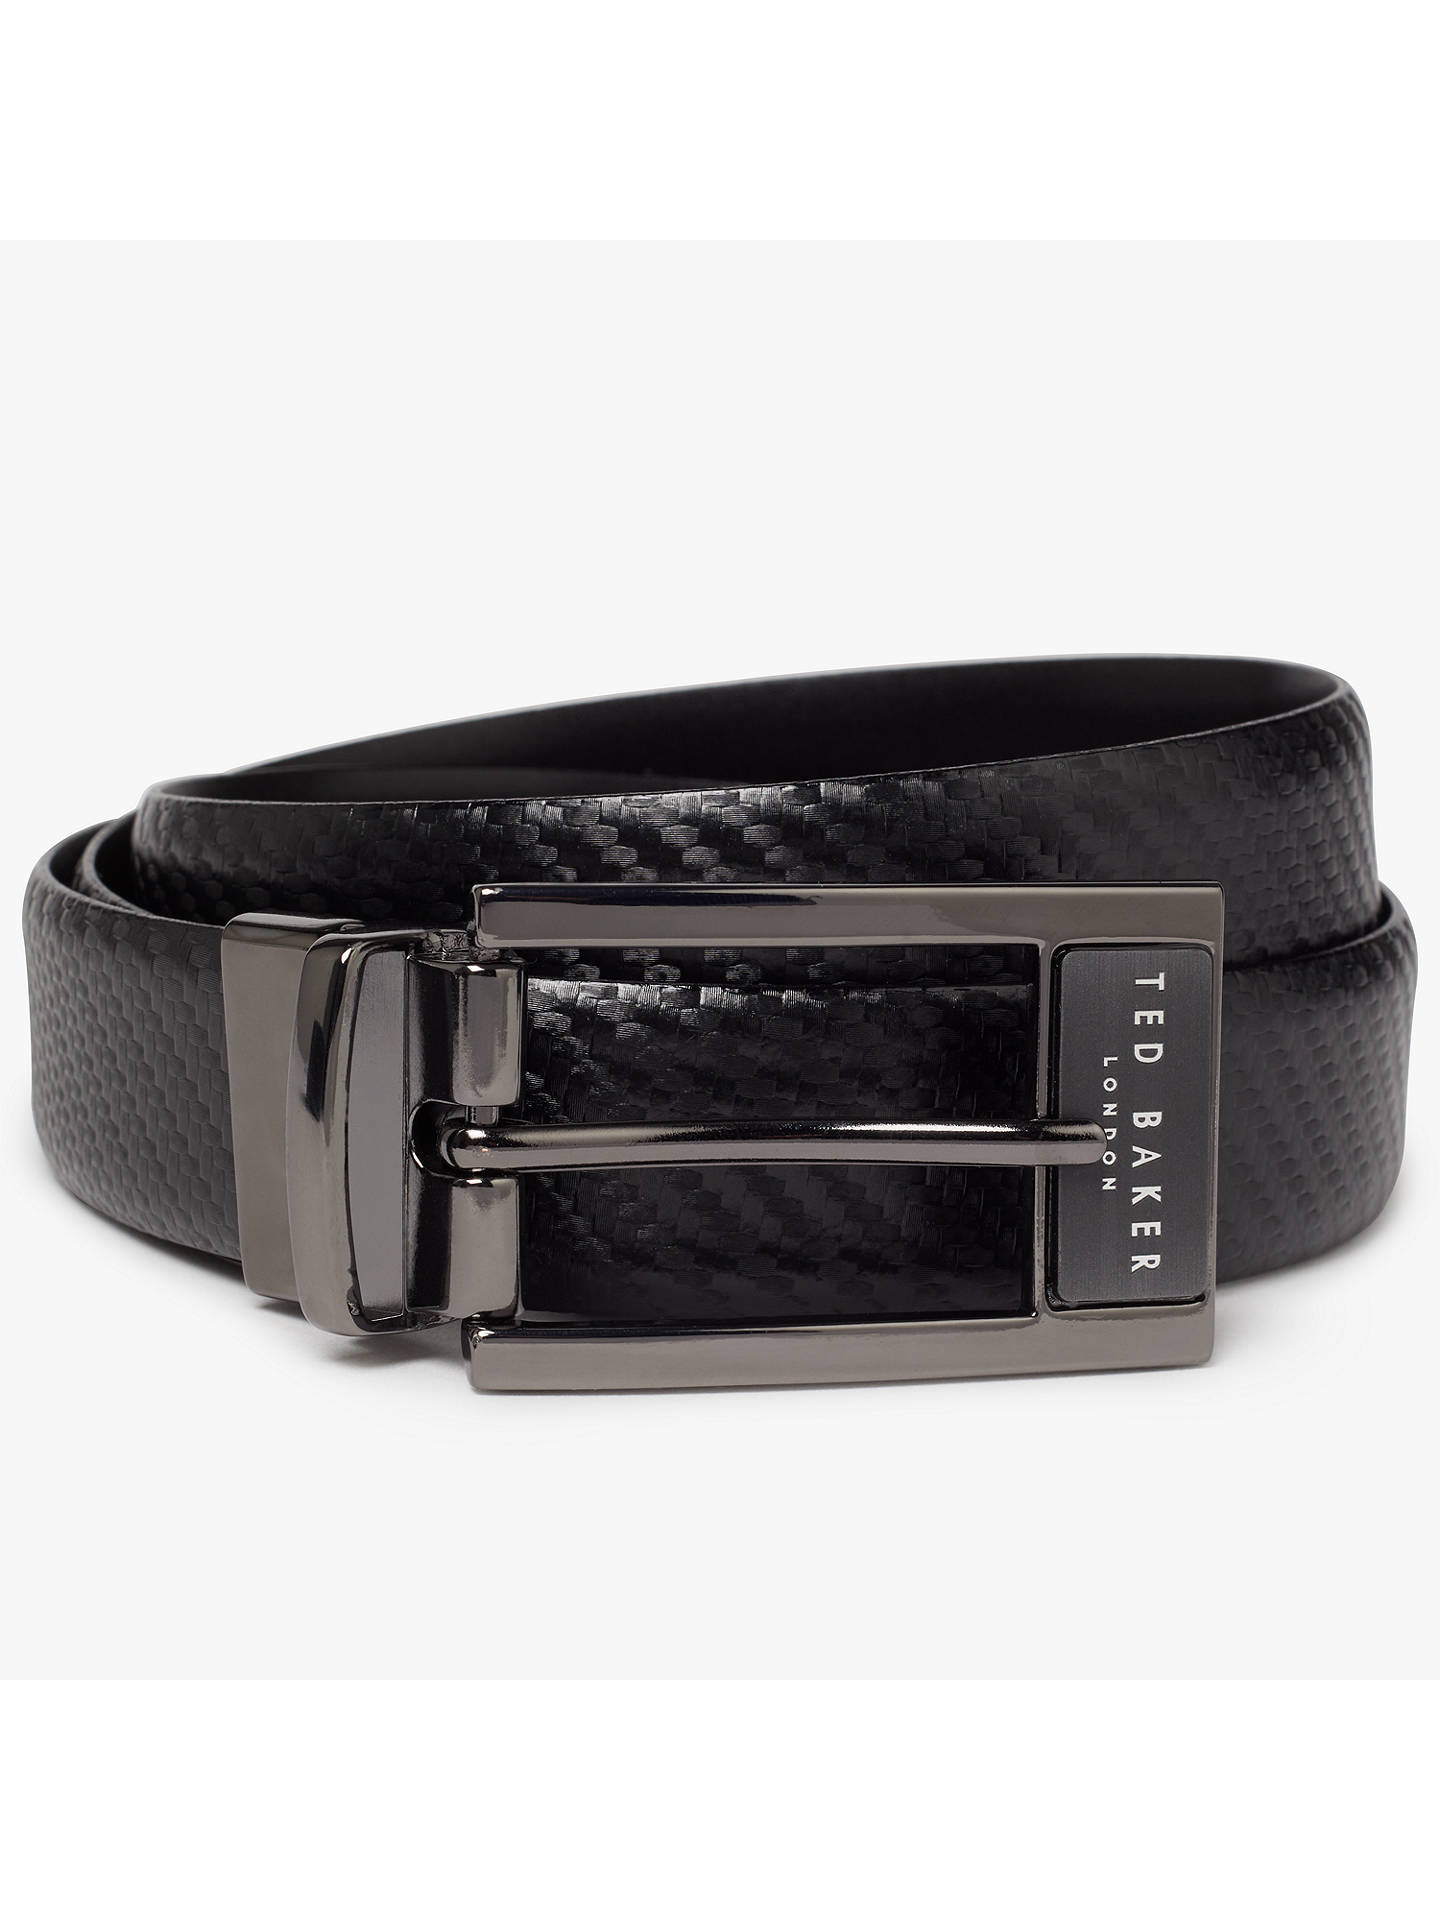 94a4878326adc Buy Ted Baker Hibisis Reversible Leather Belt